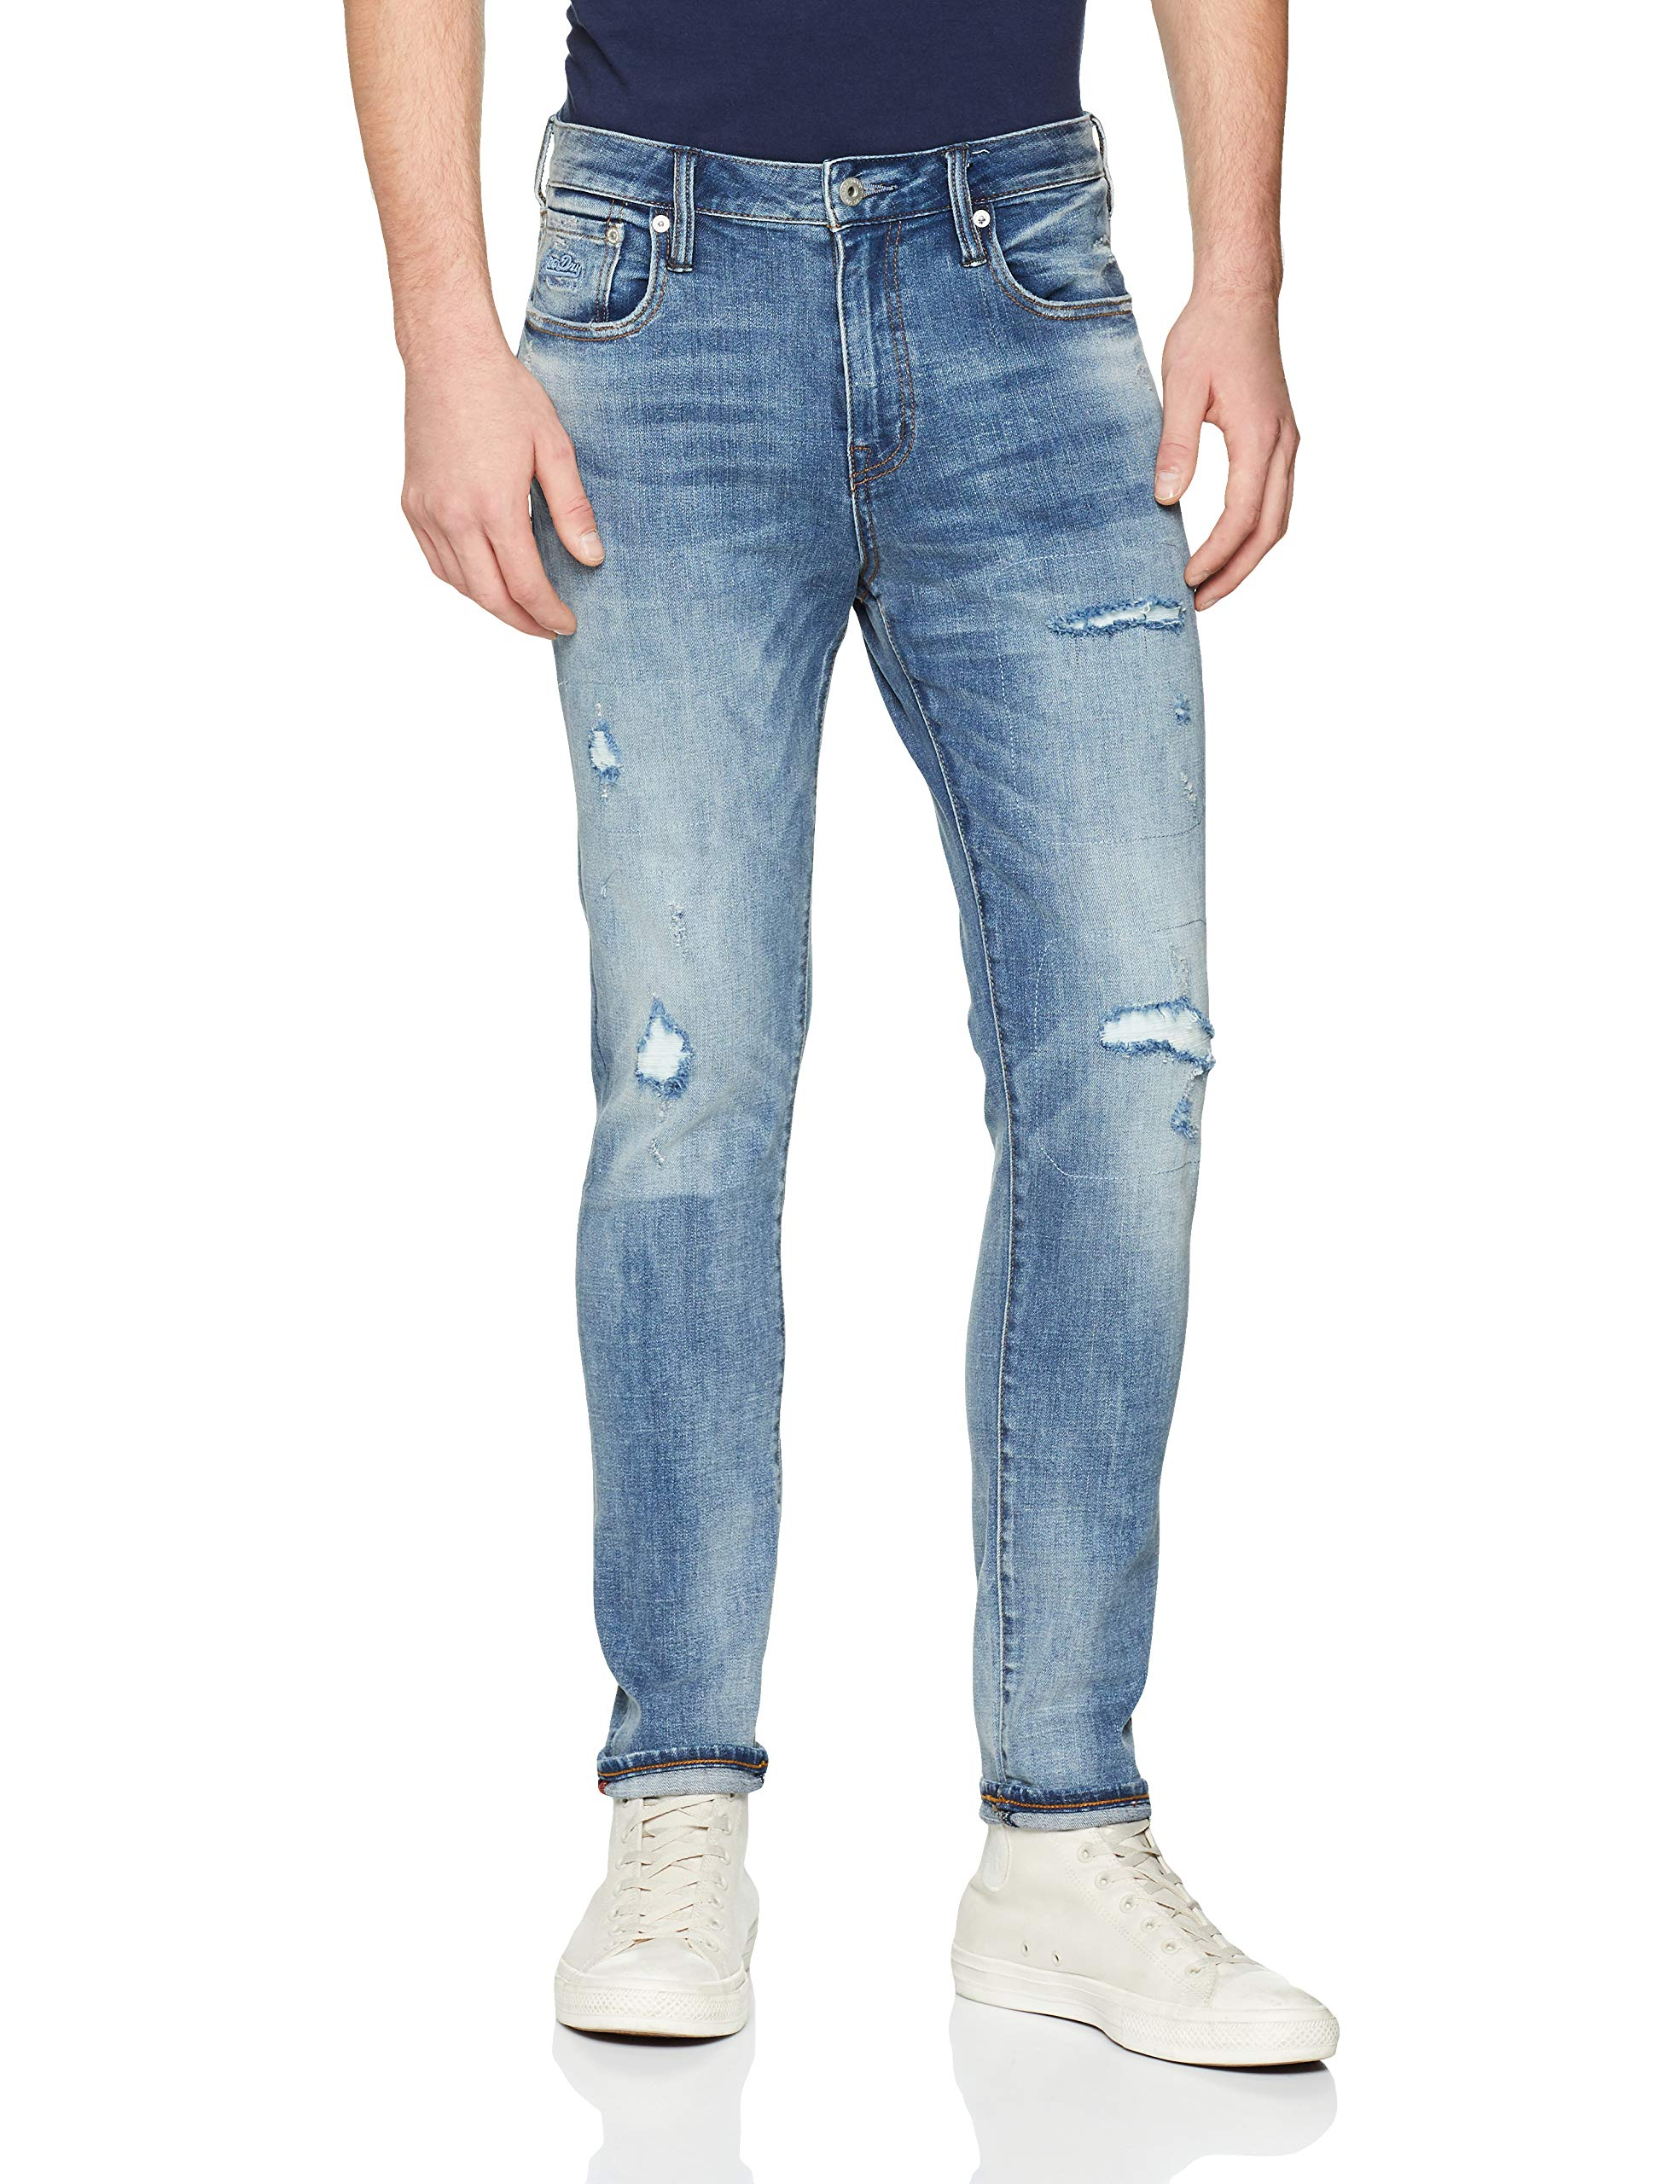 Tyler Superdry Slim Blue Rip 0Homme JeanBleuvicious Vf944taille Fabricant34 vN8wmn0